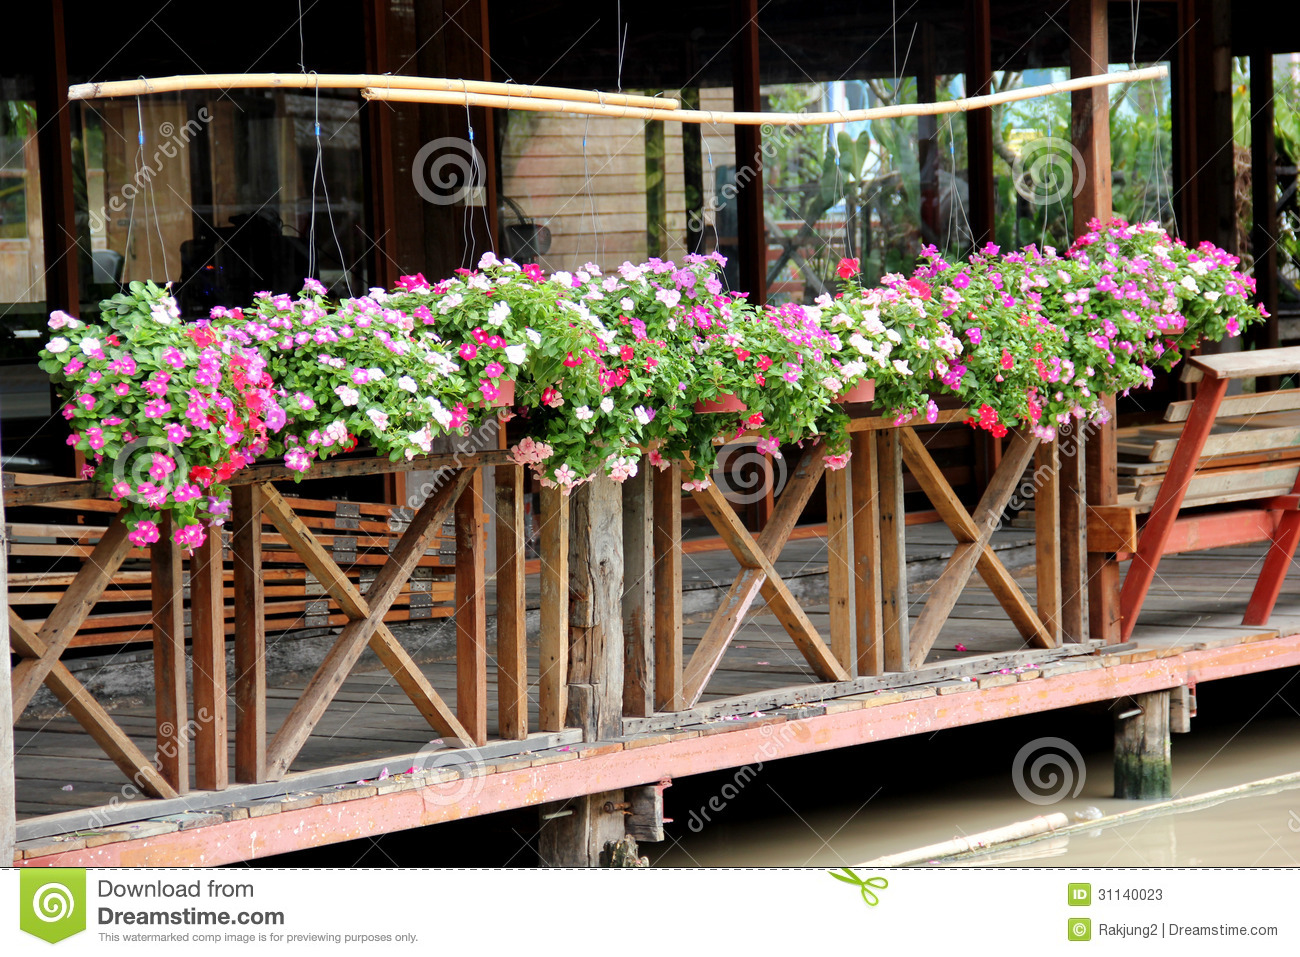 Hanging flower pots stock photos image 31140023 - Flower pots to hang on fence ...